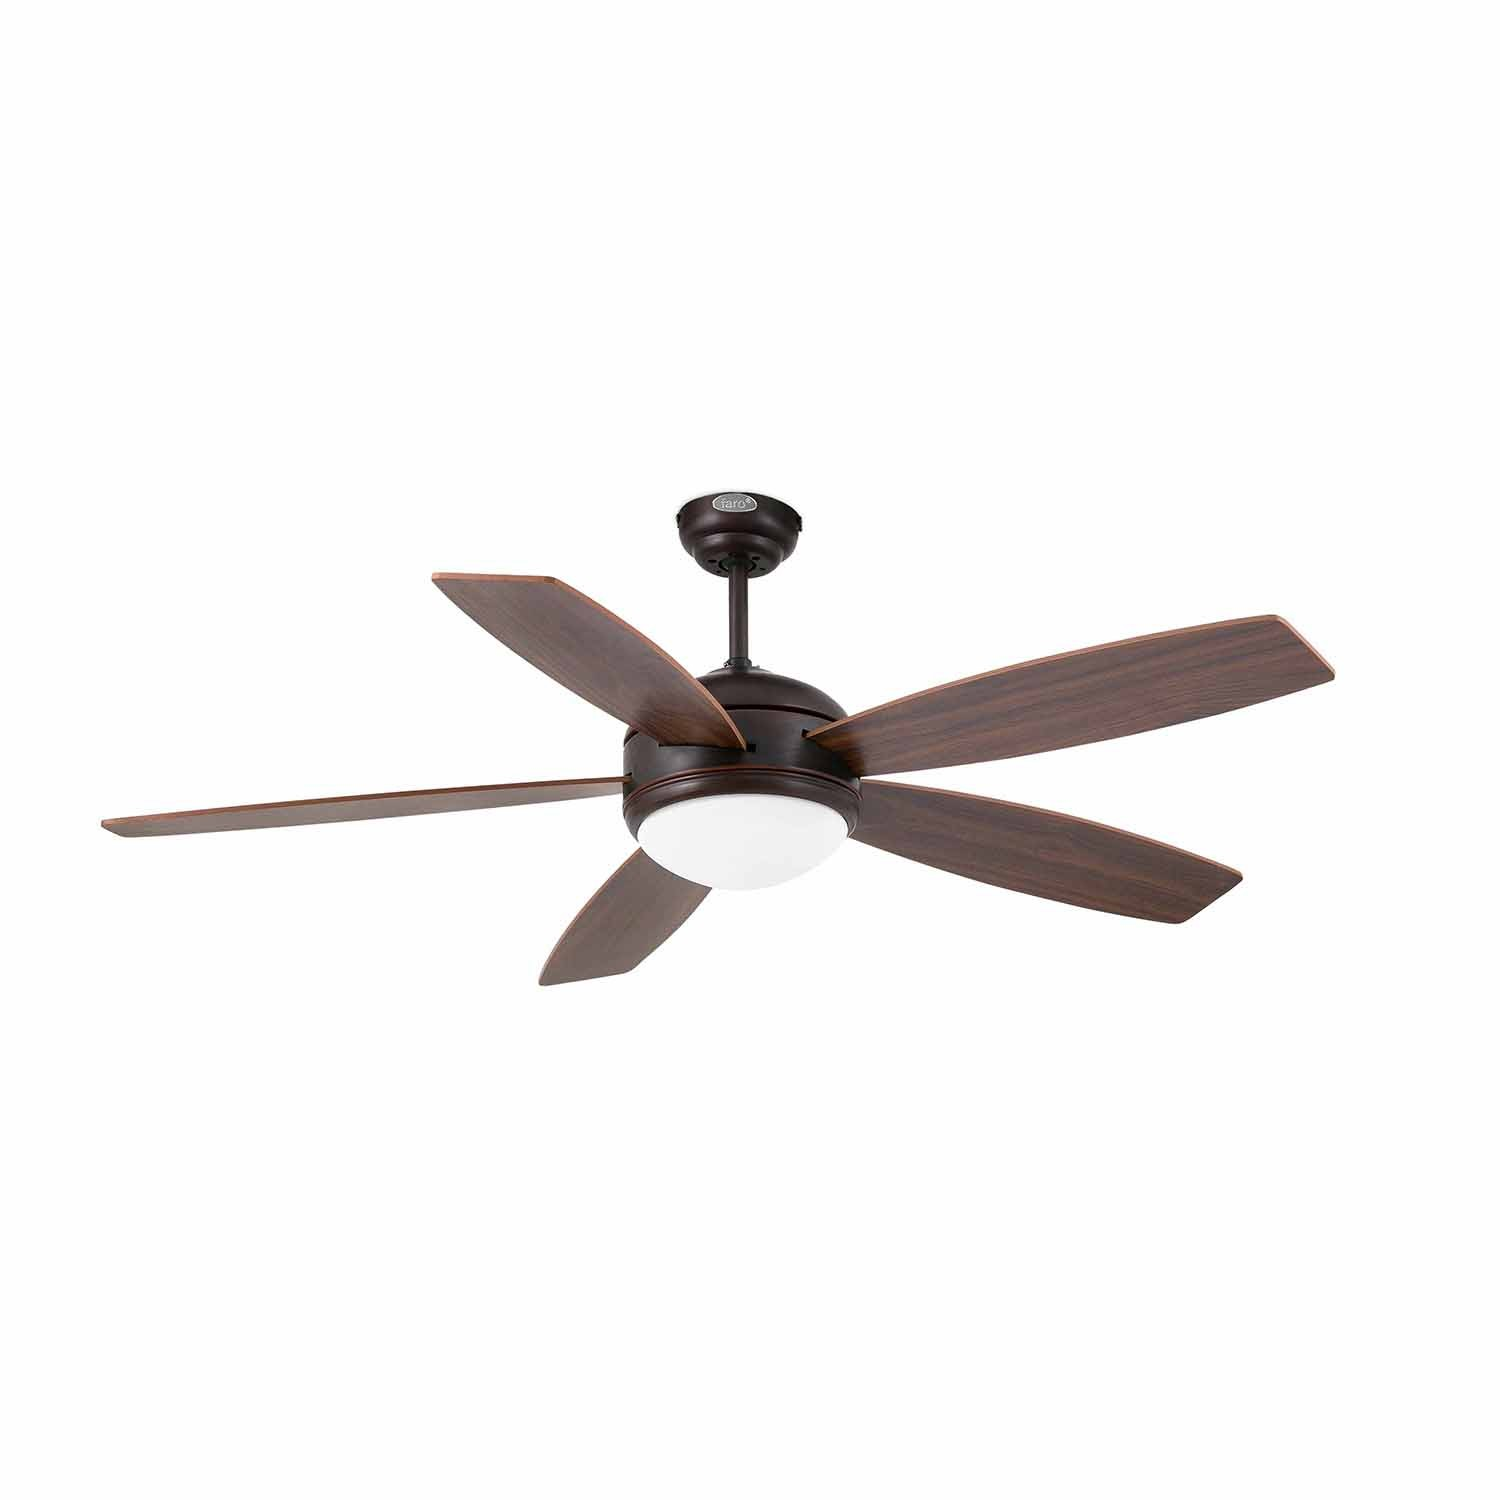 sale lighted working fan wires harbor malaysia lowes buy breeze berkshire kichler price ceilings with good light fans new ceiling bronzea switch not on kimberley inch india blade